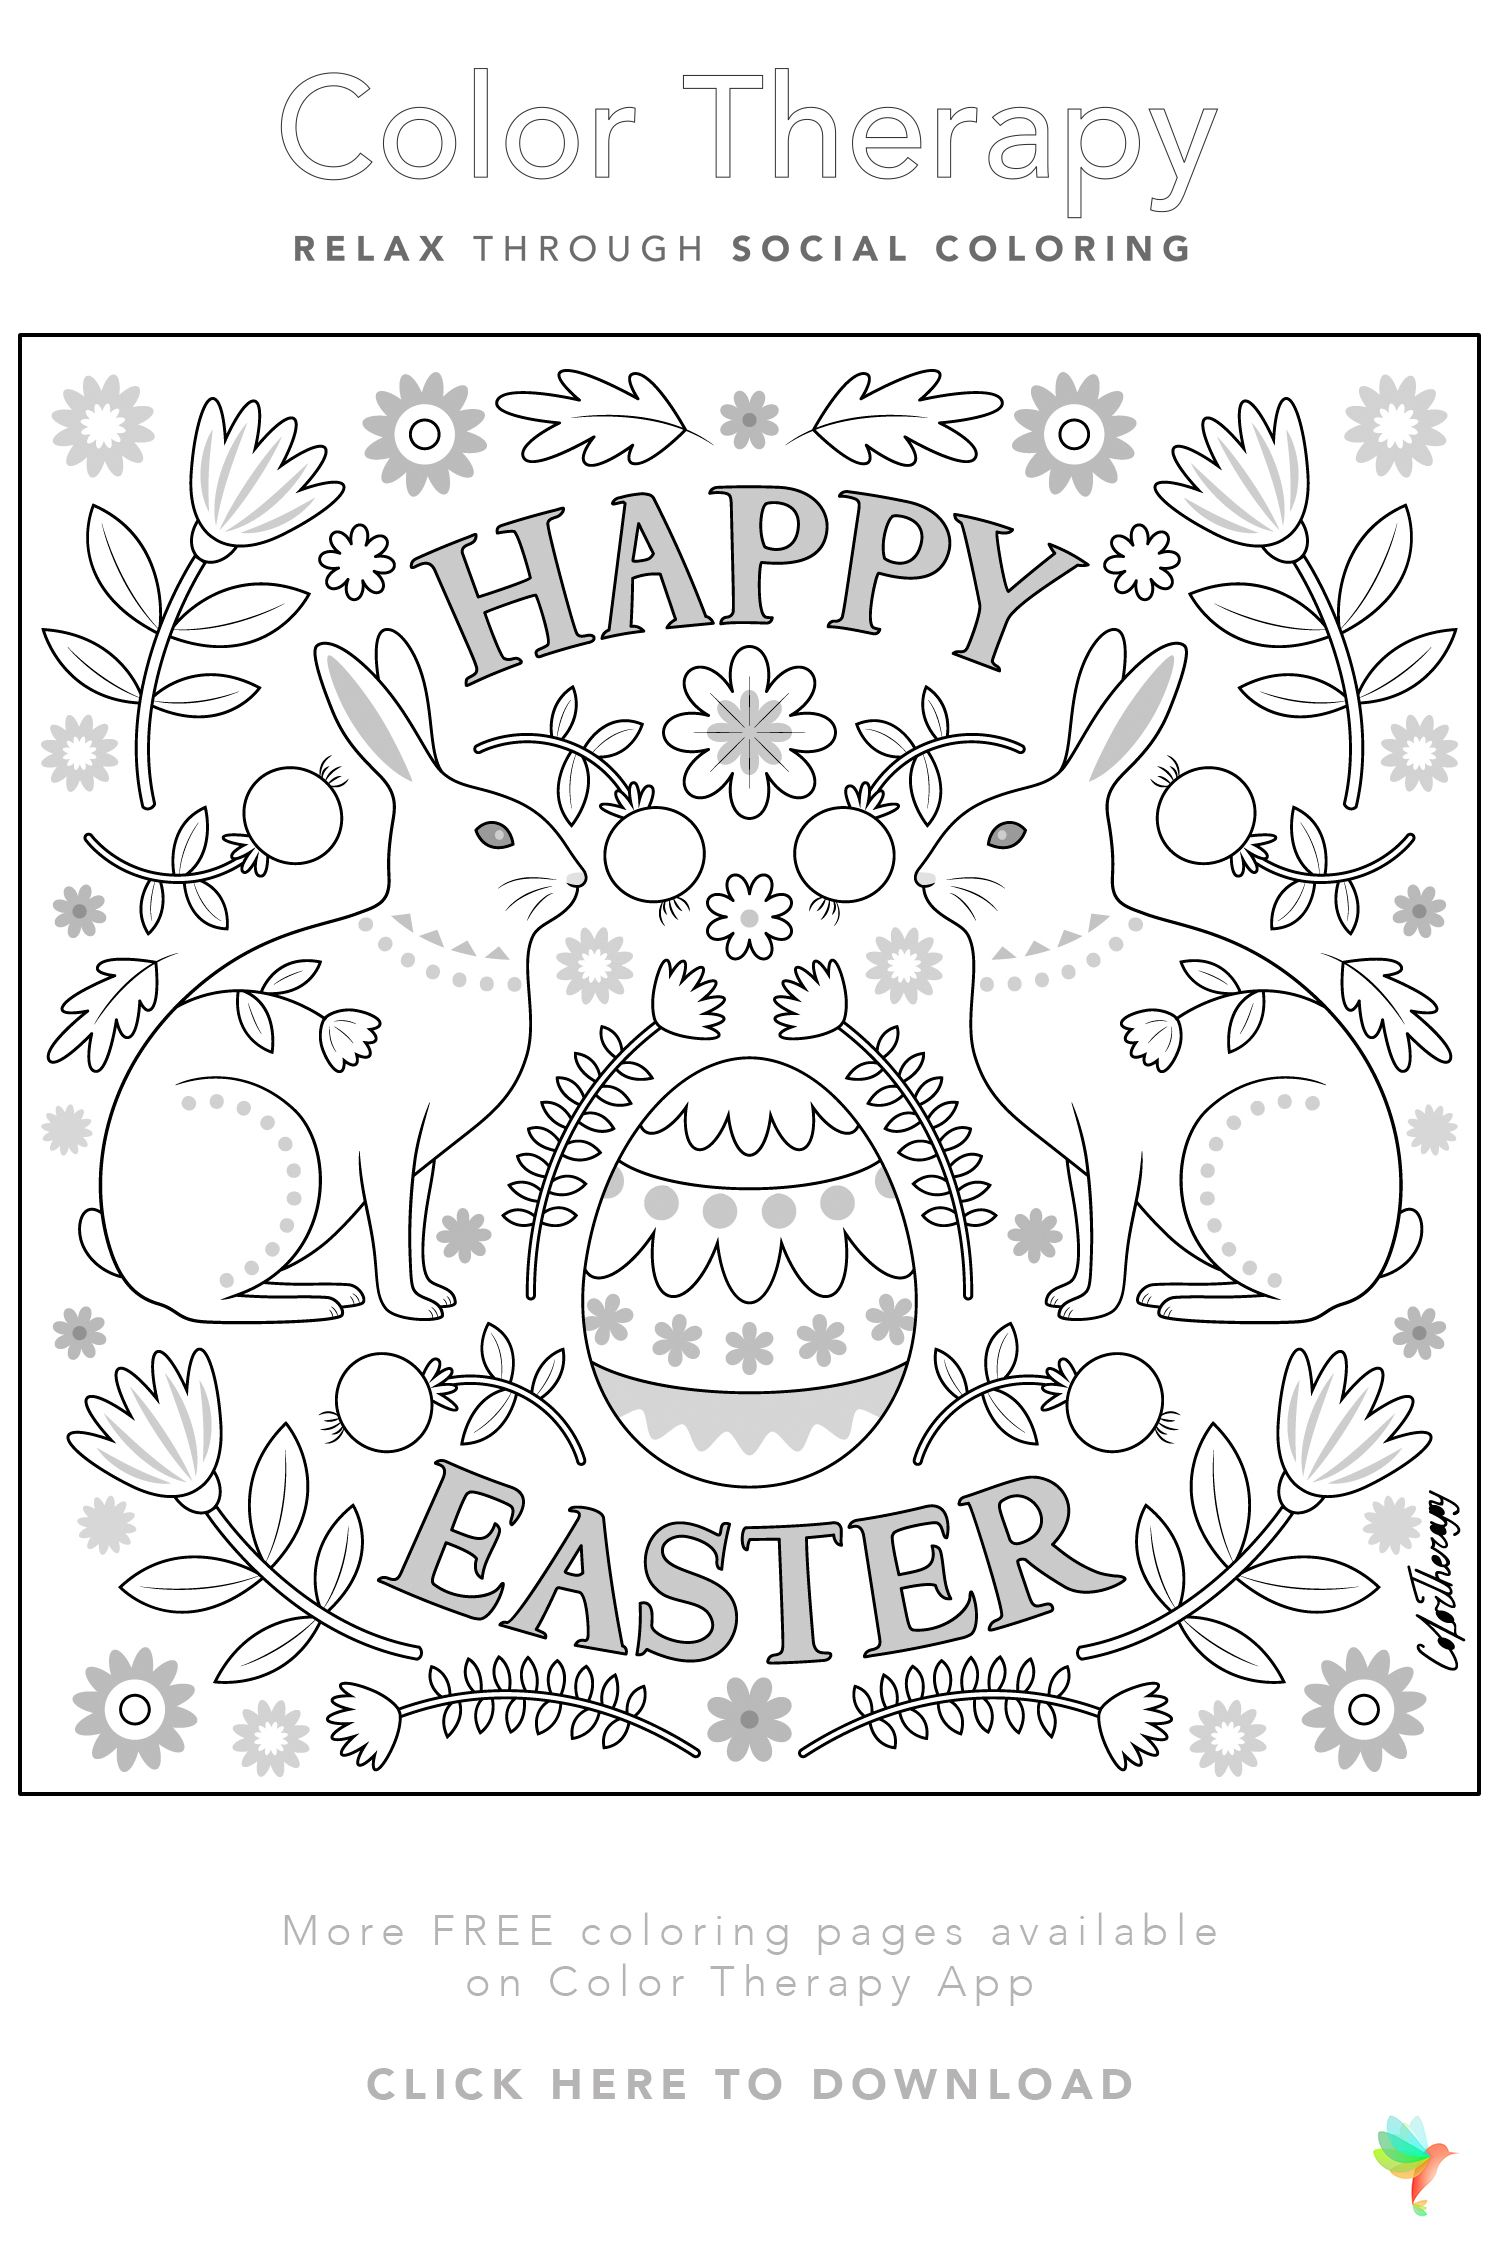 Color Therapy Gift Of The Day Free Coloring Template Coloring Pages Free Coloring Pages Color Therapy